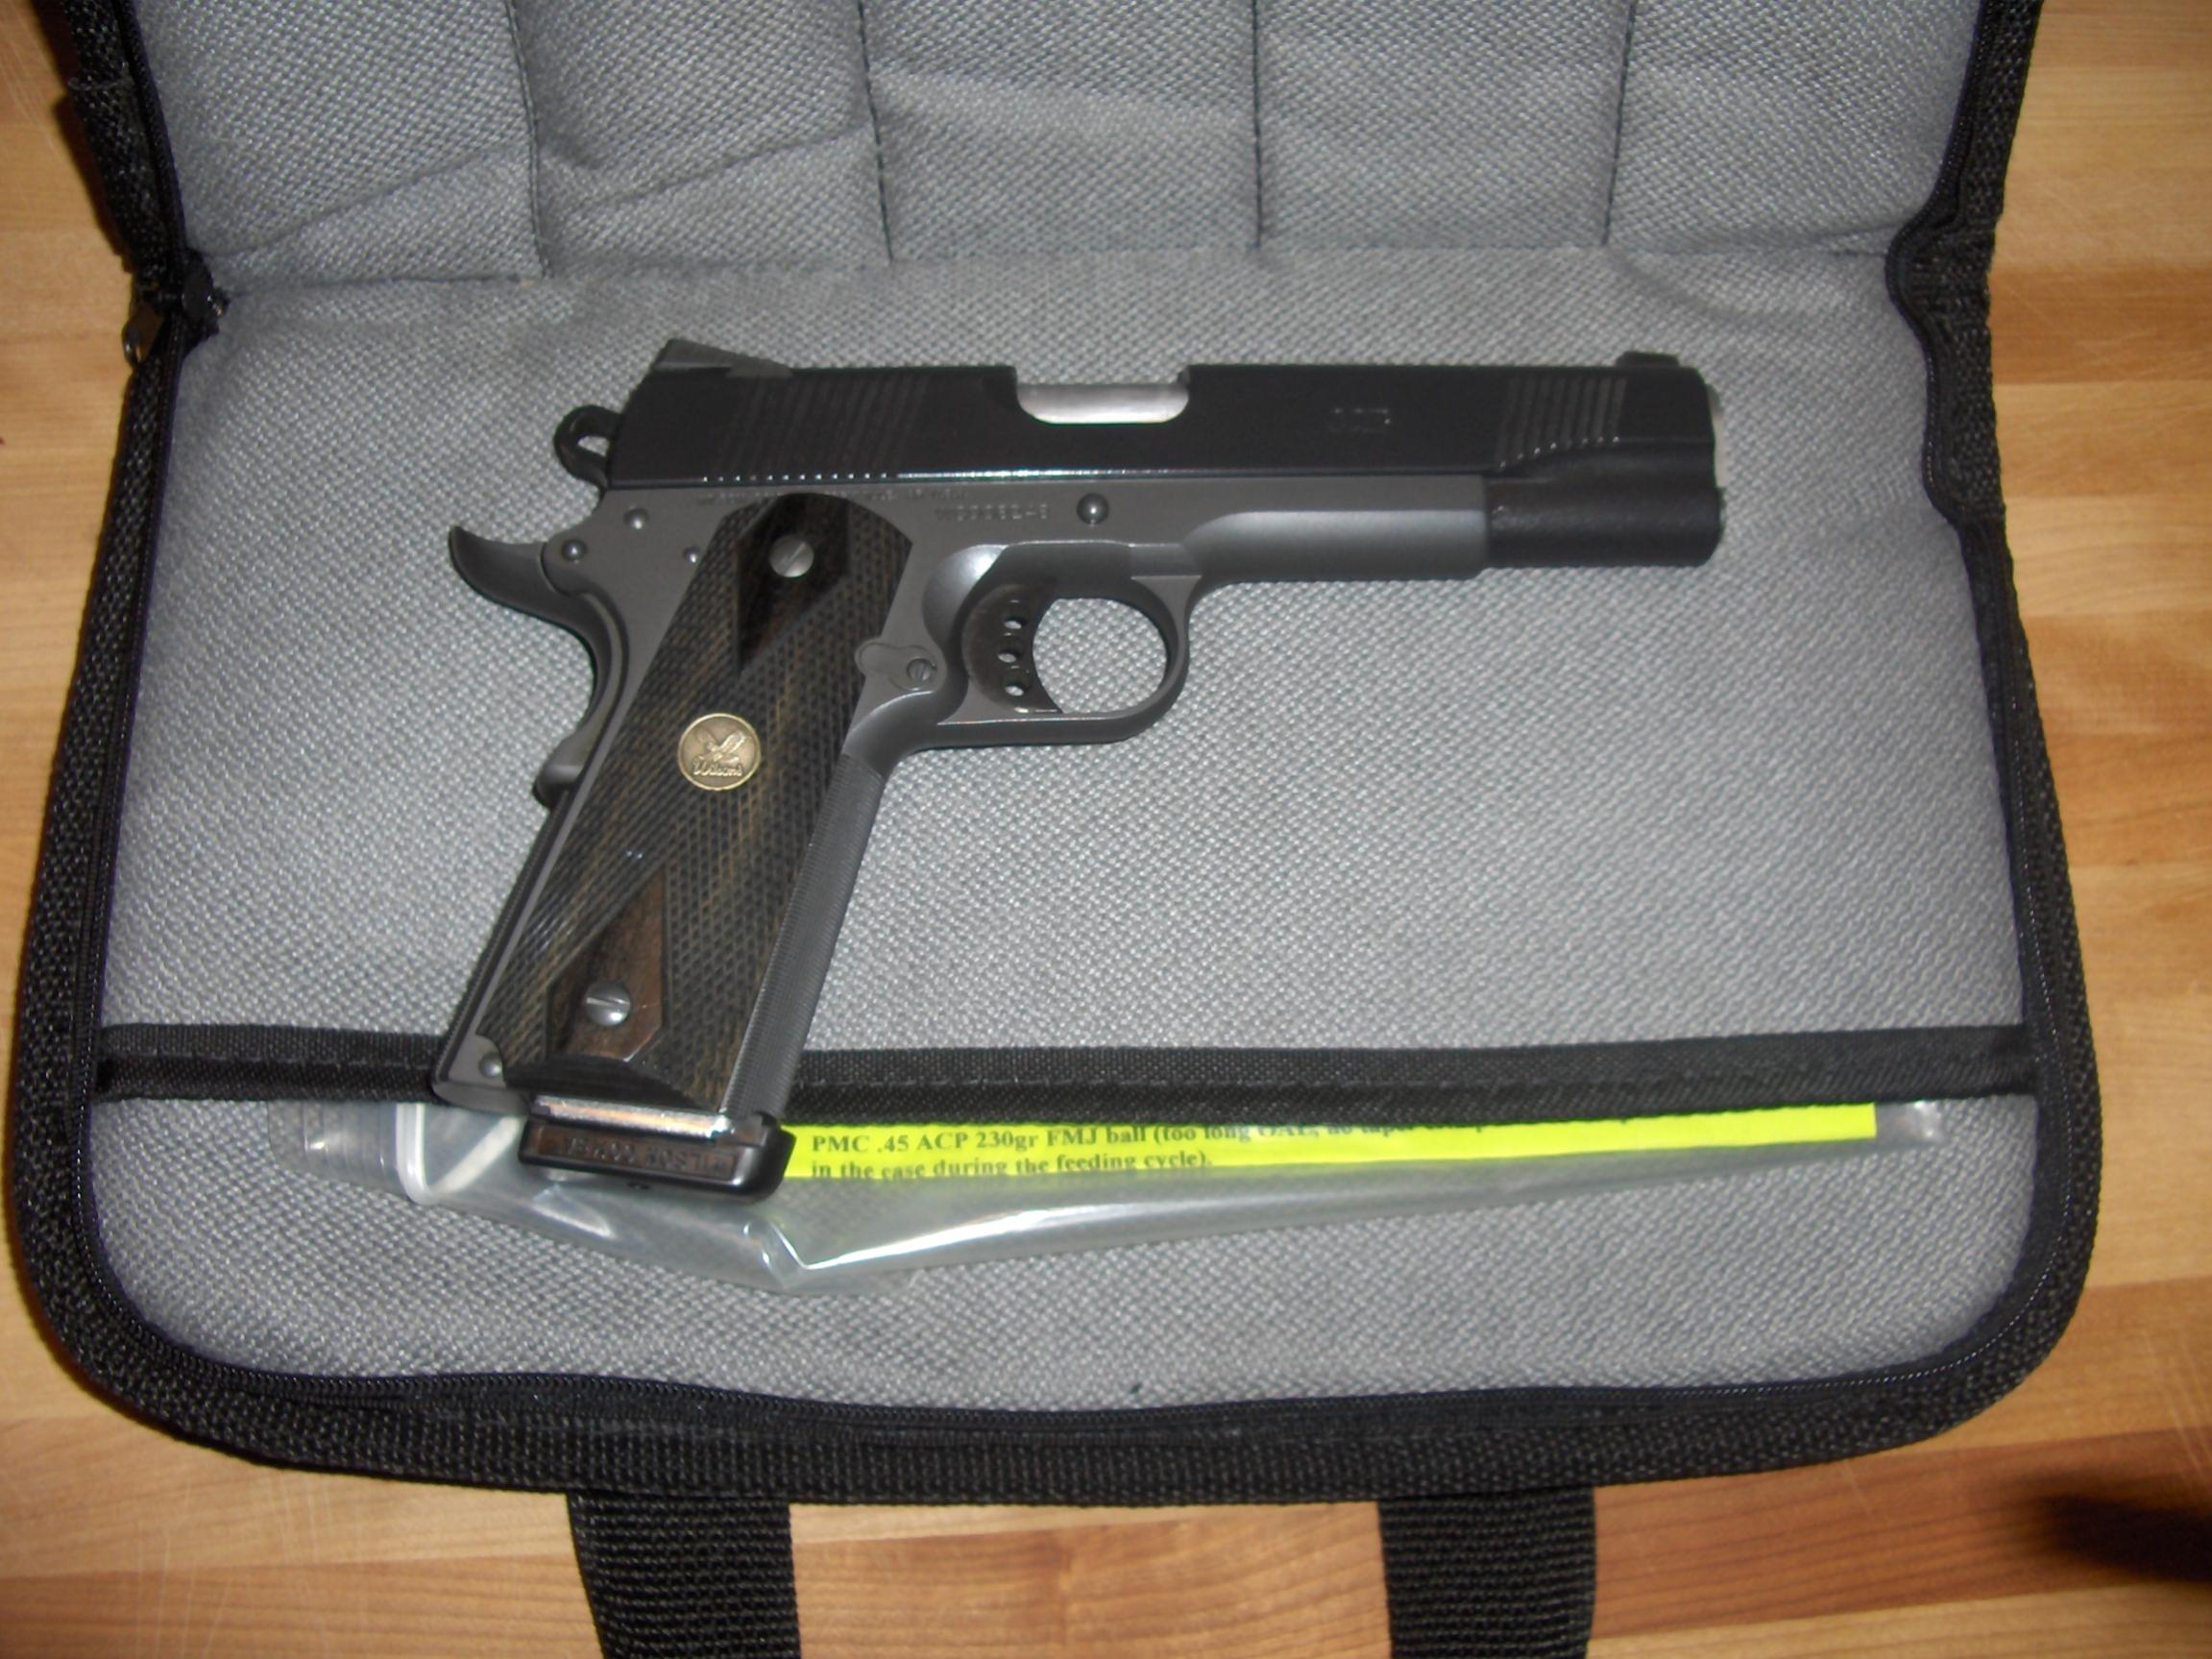 Here it is, new to me Wilson Combat CQB-003.jpg